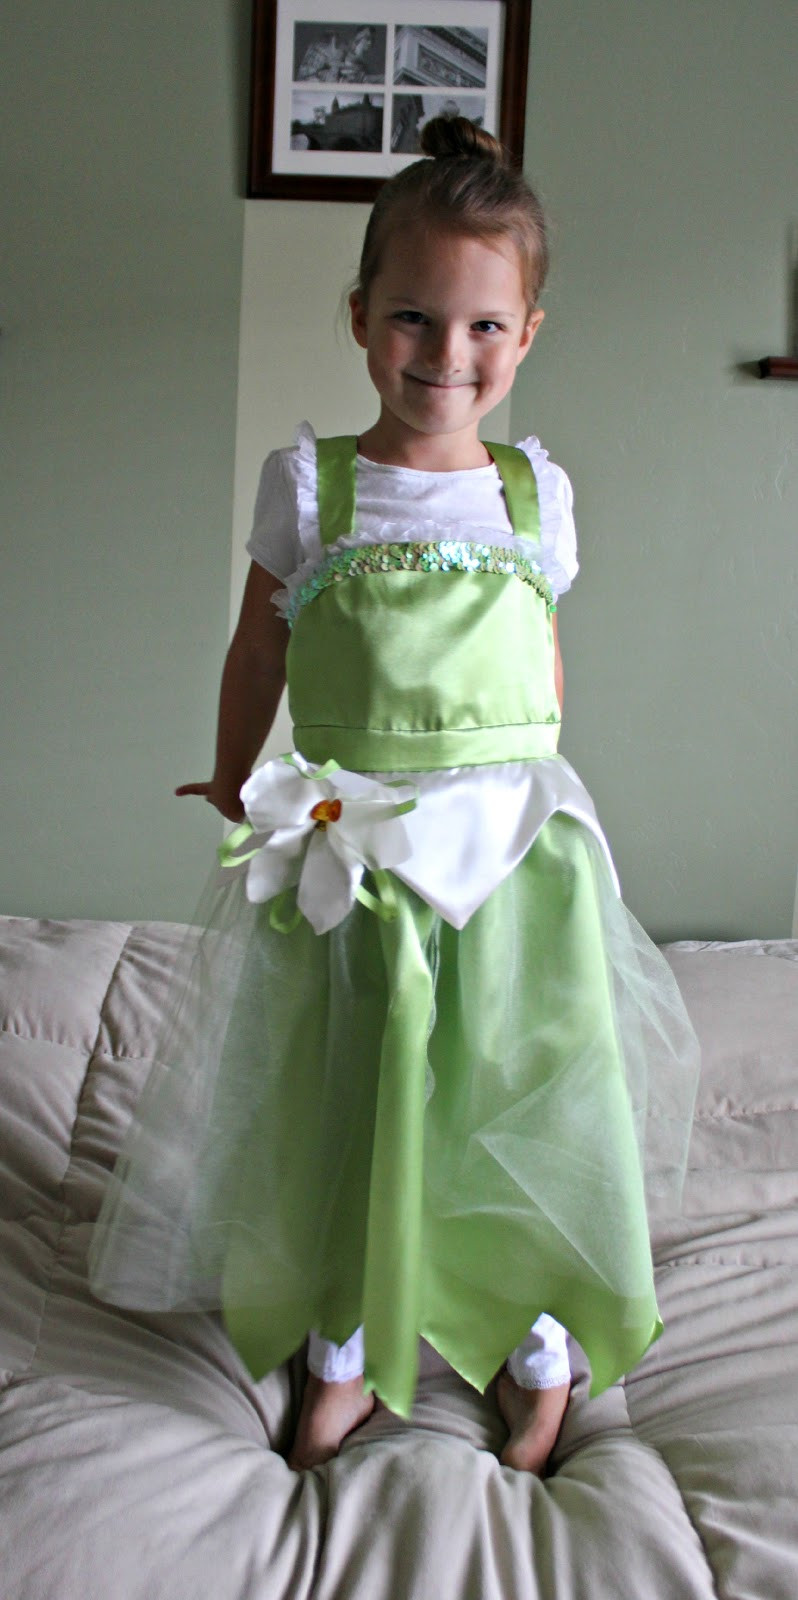 Best ideas about DIY Princess Costume . Save or Pin RisC Handmade Homemade Princess Tiana Costume Now.